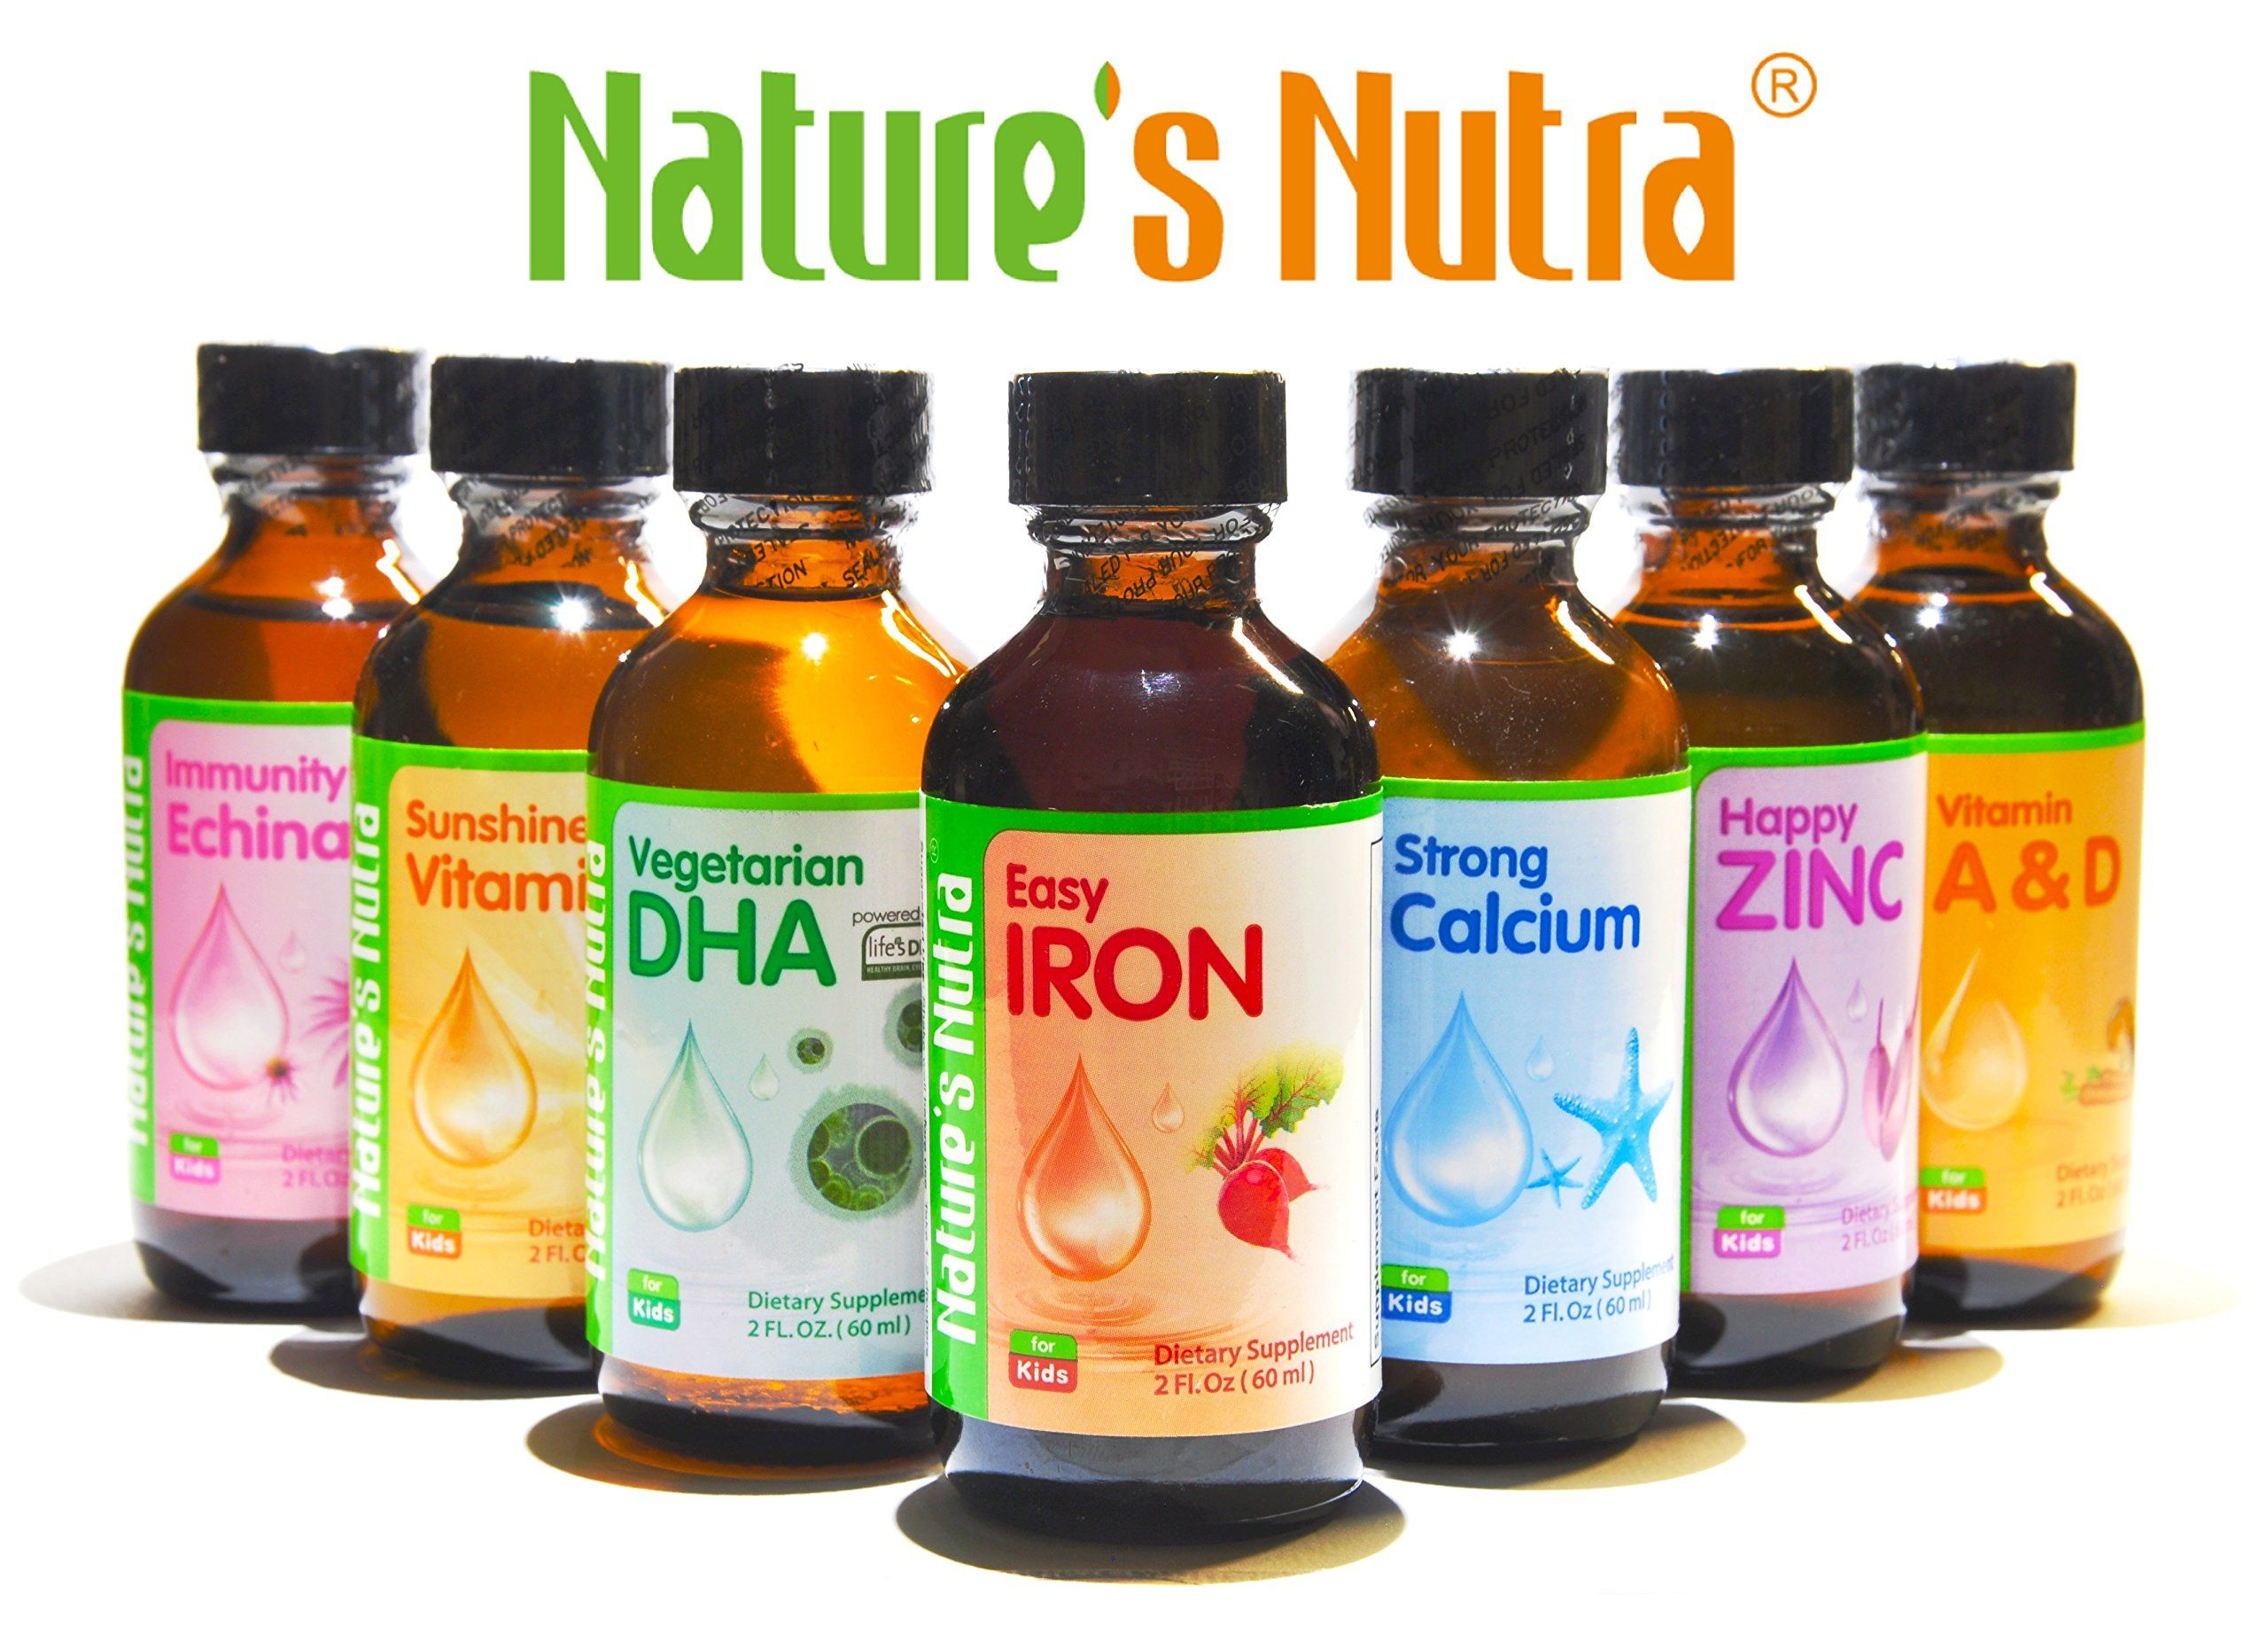 Natures Nutra Vegetarian Baby Dha 2 Fl Oz 60ml 4pack With Bonus Vitamin D3 Premium Baby And Infant Liquid Drops Multivitamin Supplements Multivitamin Baby Dha